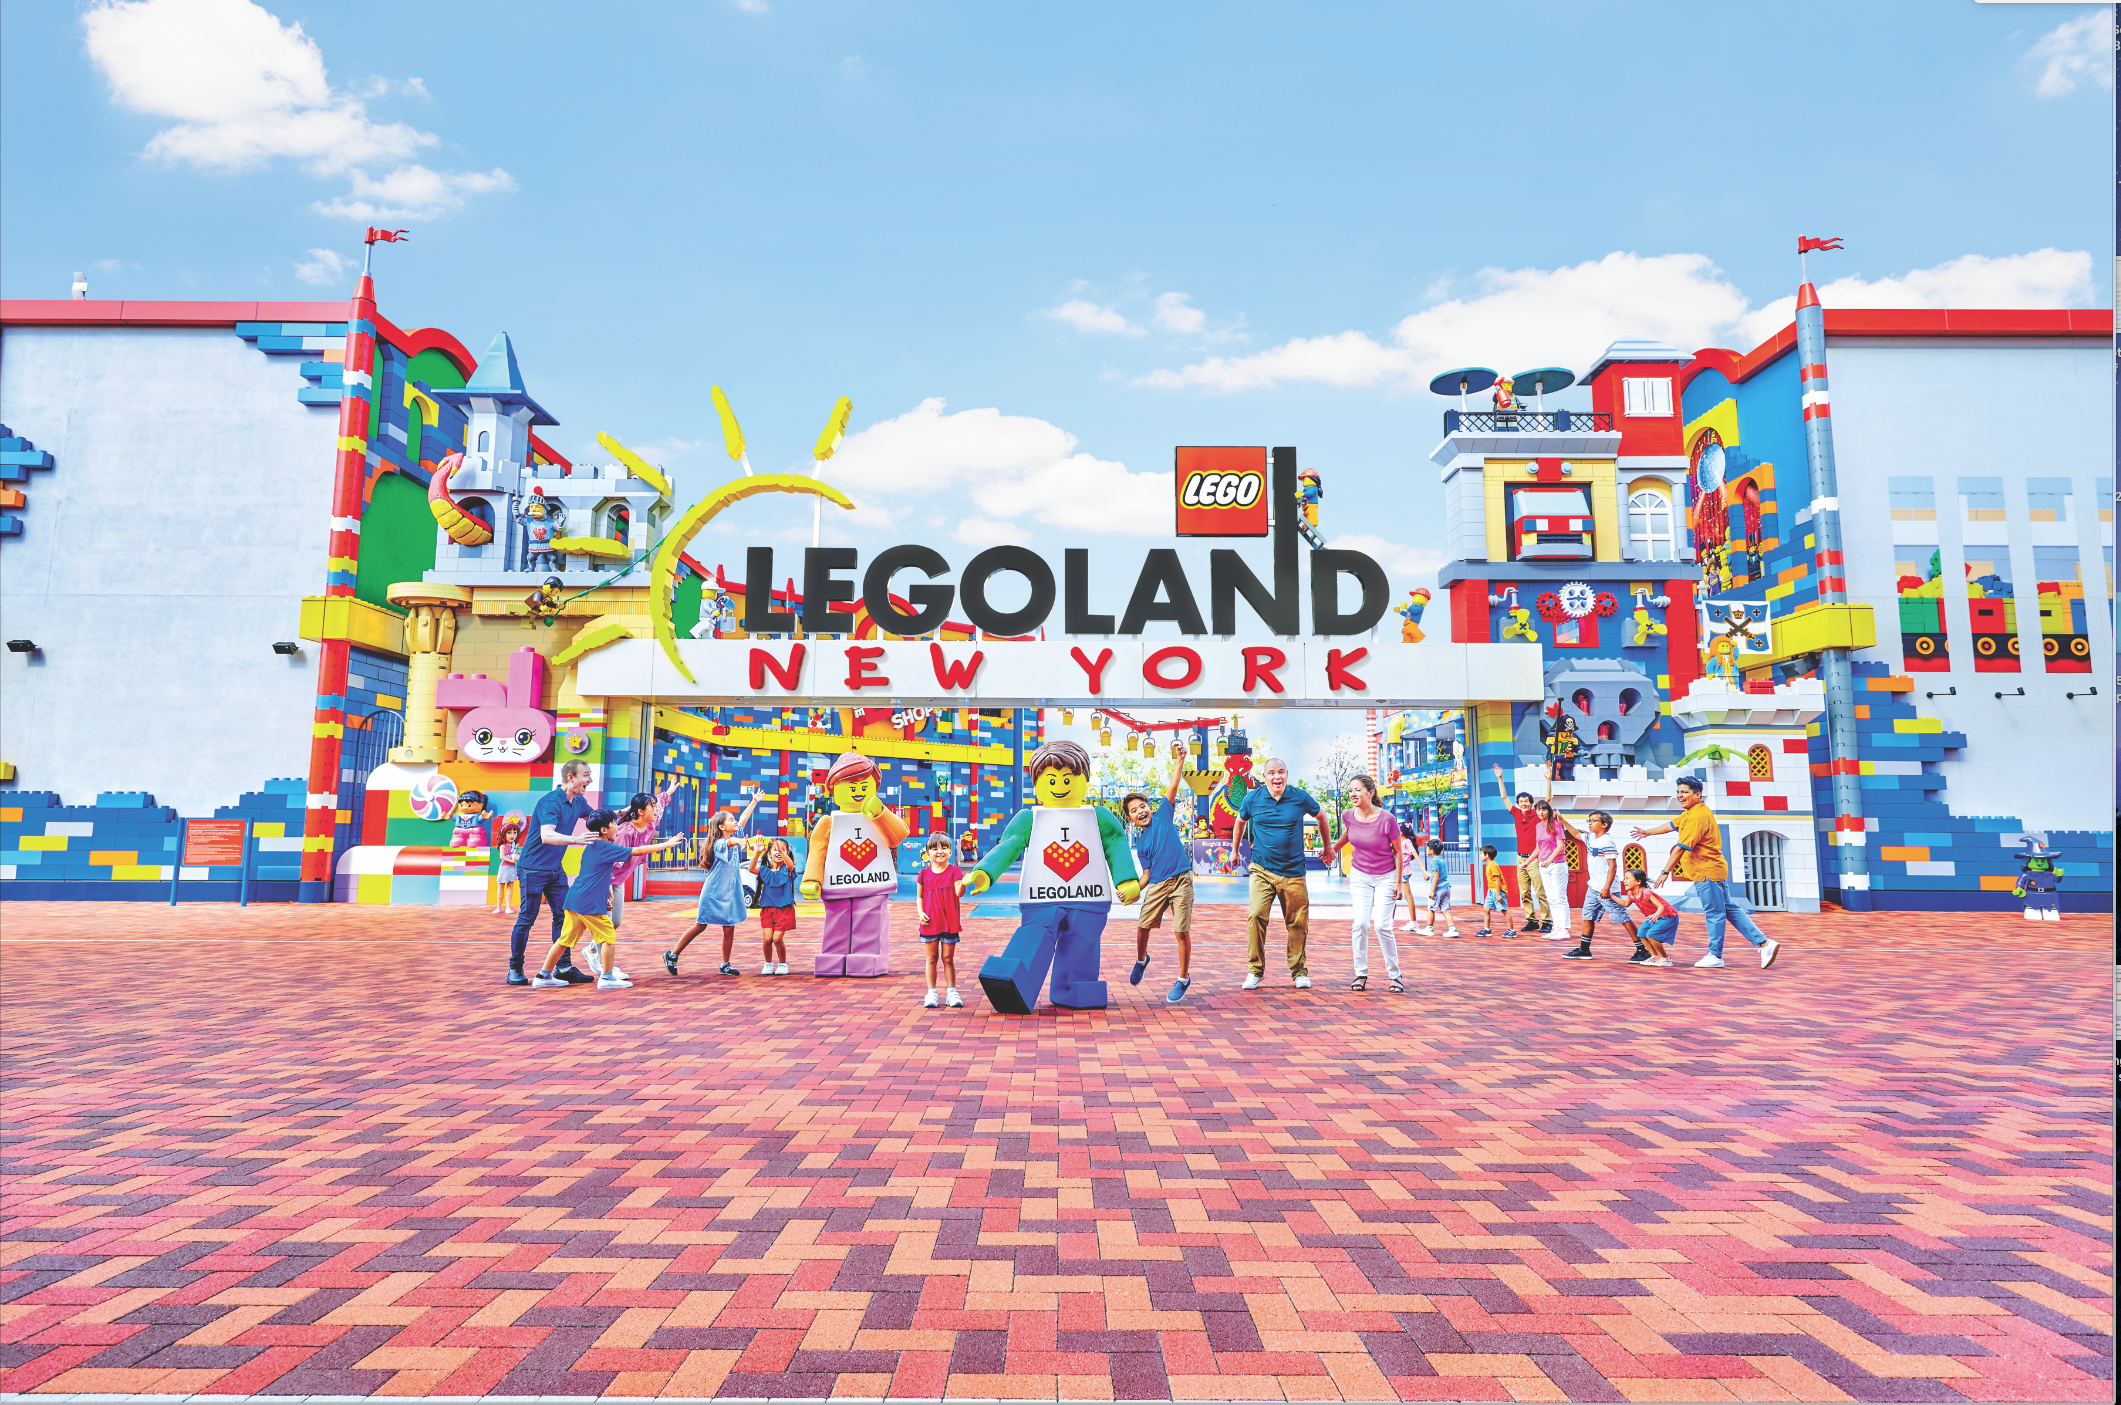 LEGOLAND New York Welcome Arch